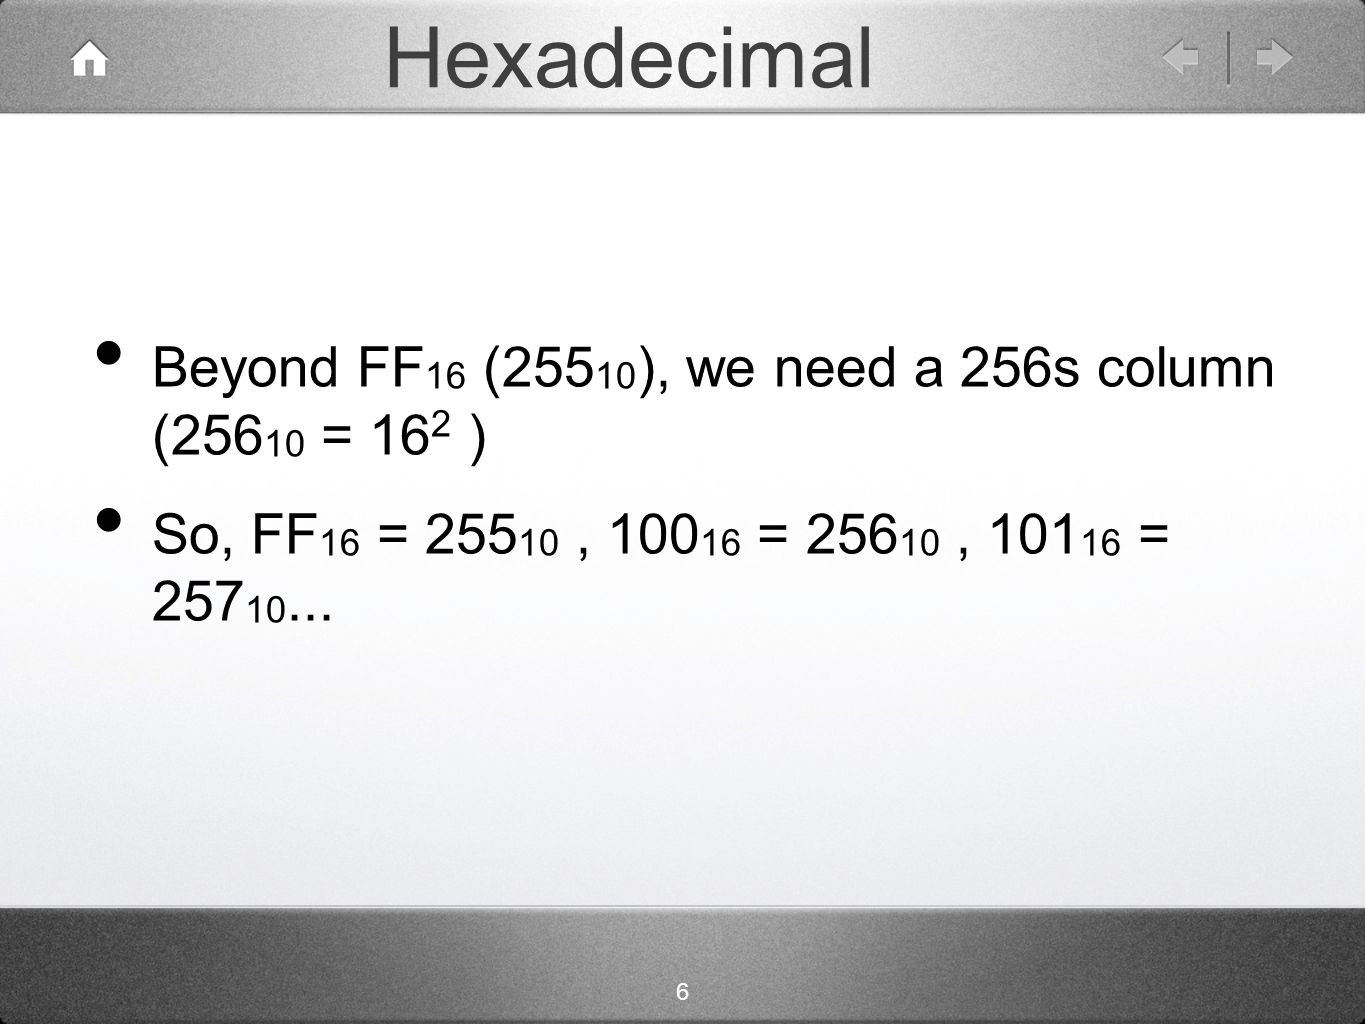 6 Hexadecimal Beyond FF 16 (255 10 ), we need a 256s column (256 10 = 16 2 ) So, FF 16 = 255 10, 100 16 = 256 10, 101 16 = 257 10...